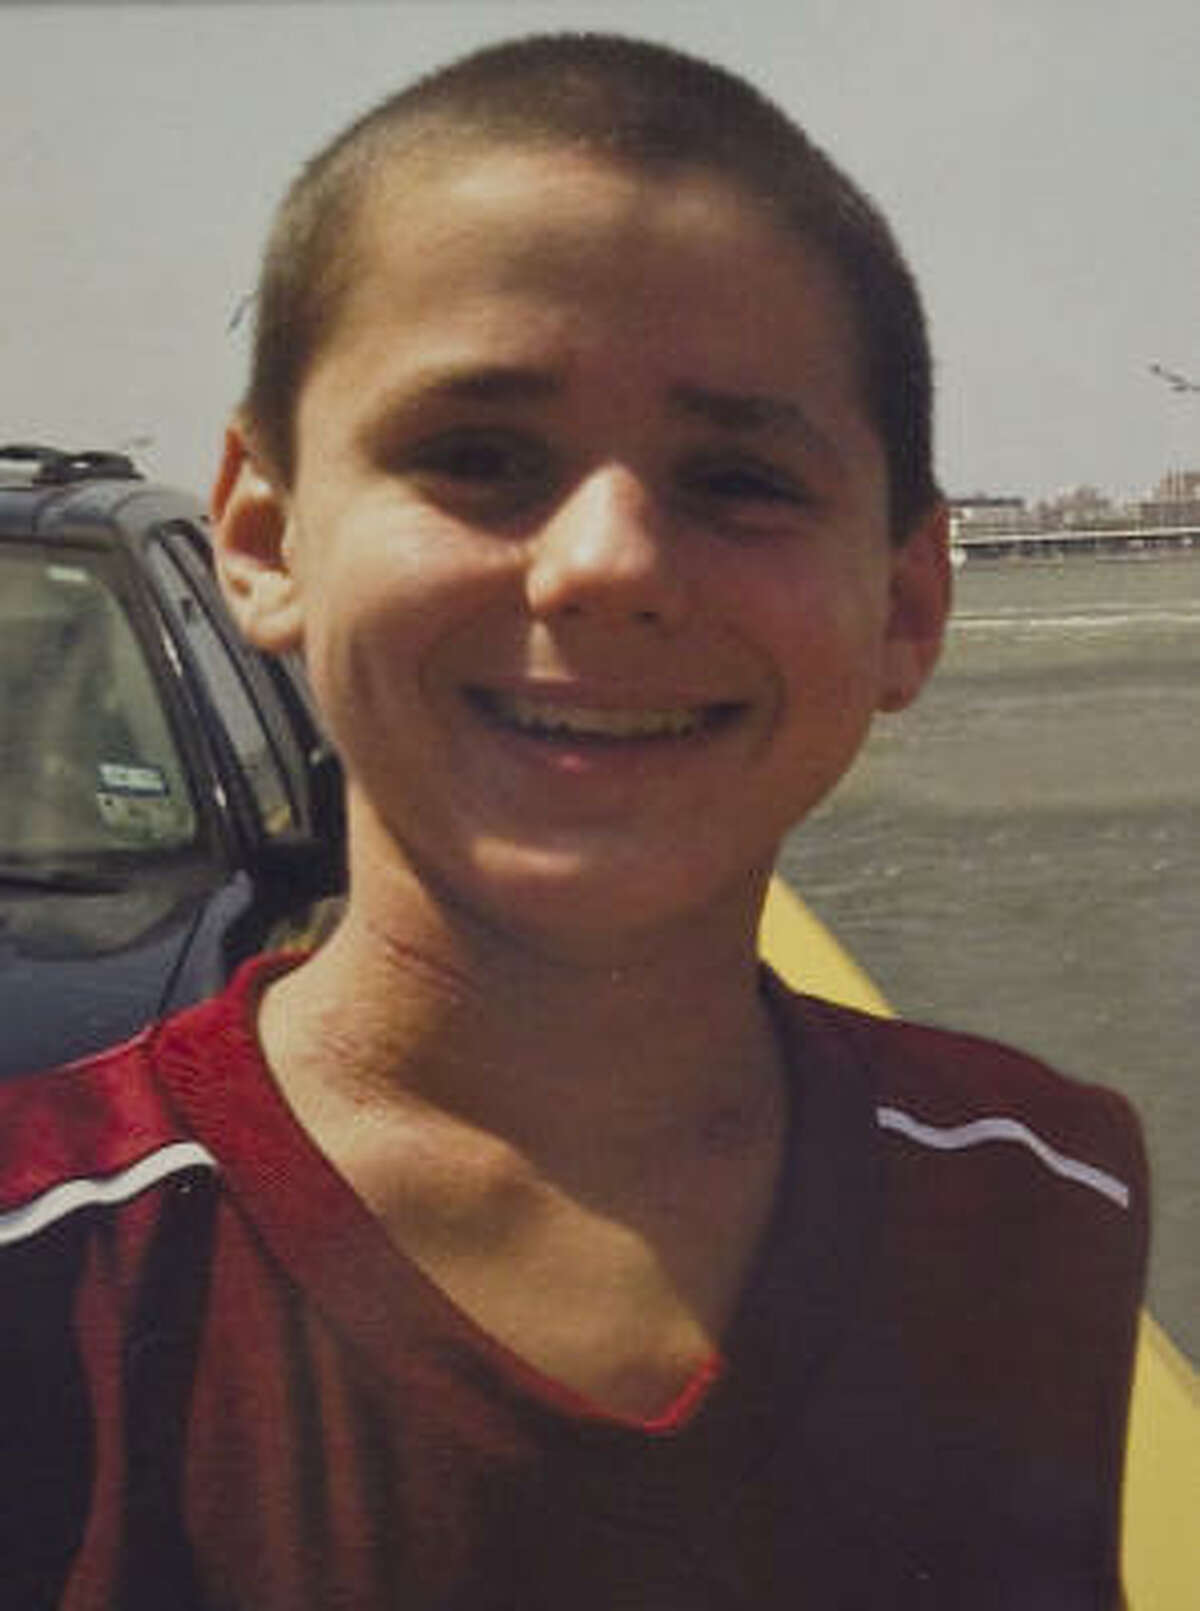 Asher Brown, 13, shot himself in the head at home.